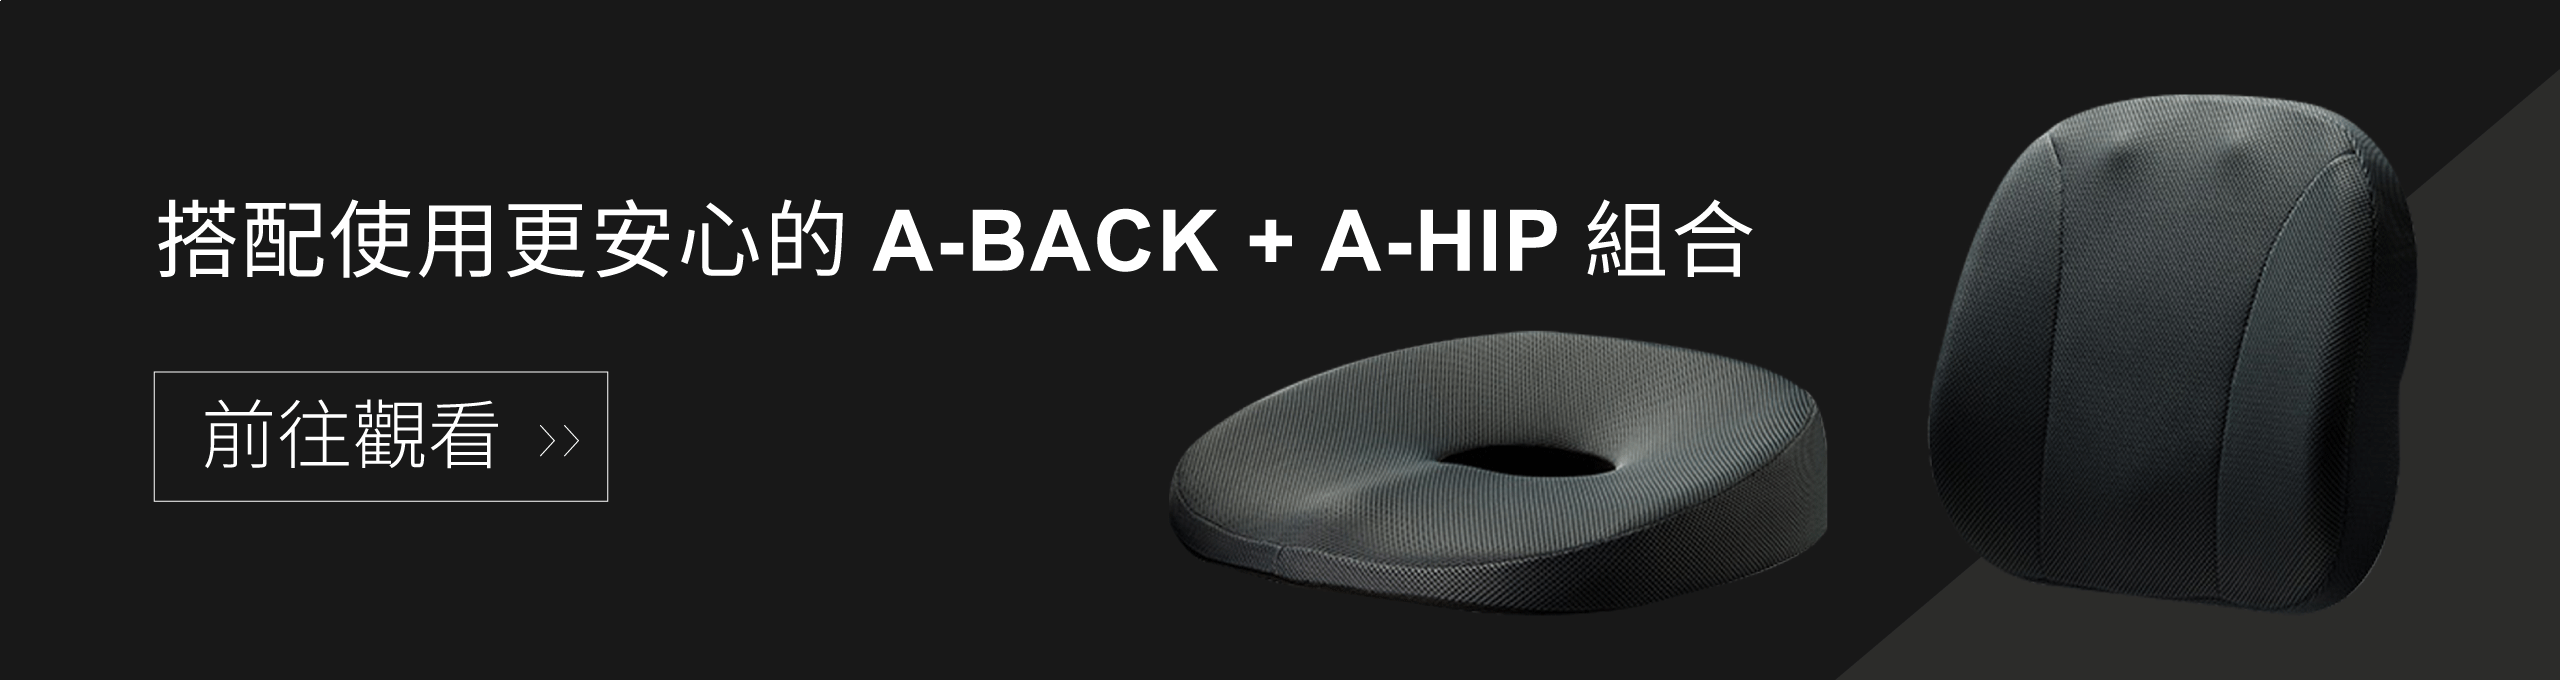 Aikaa A-BACK + A-HIP 組合 官網連結